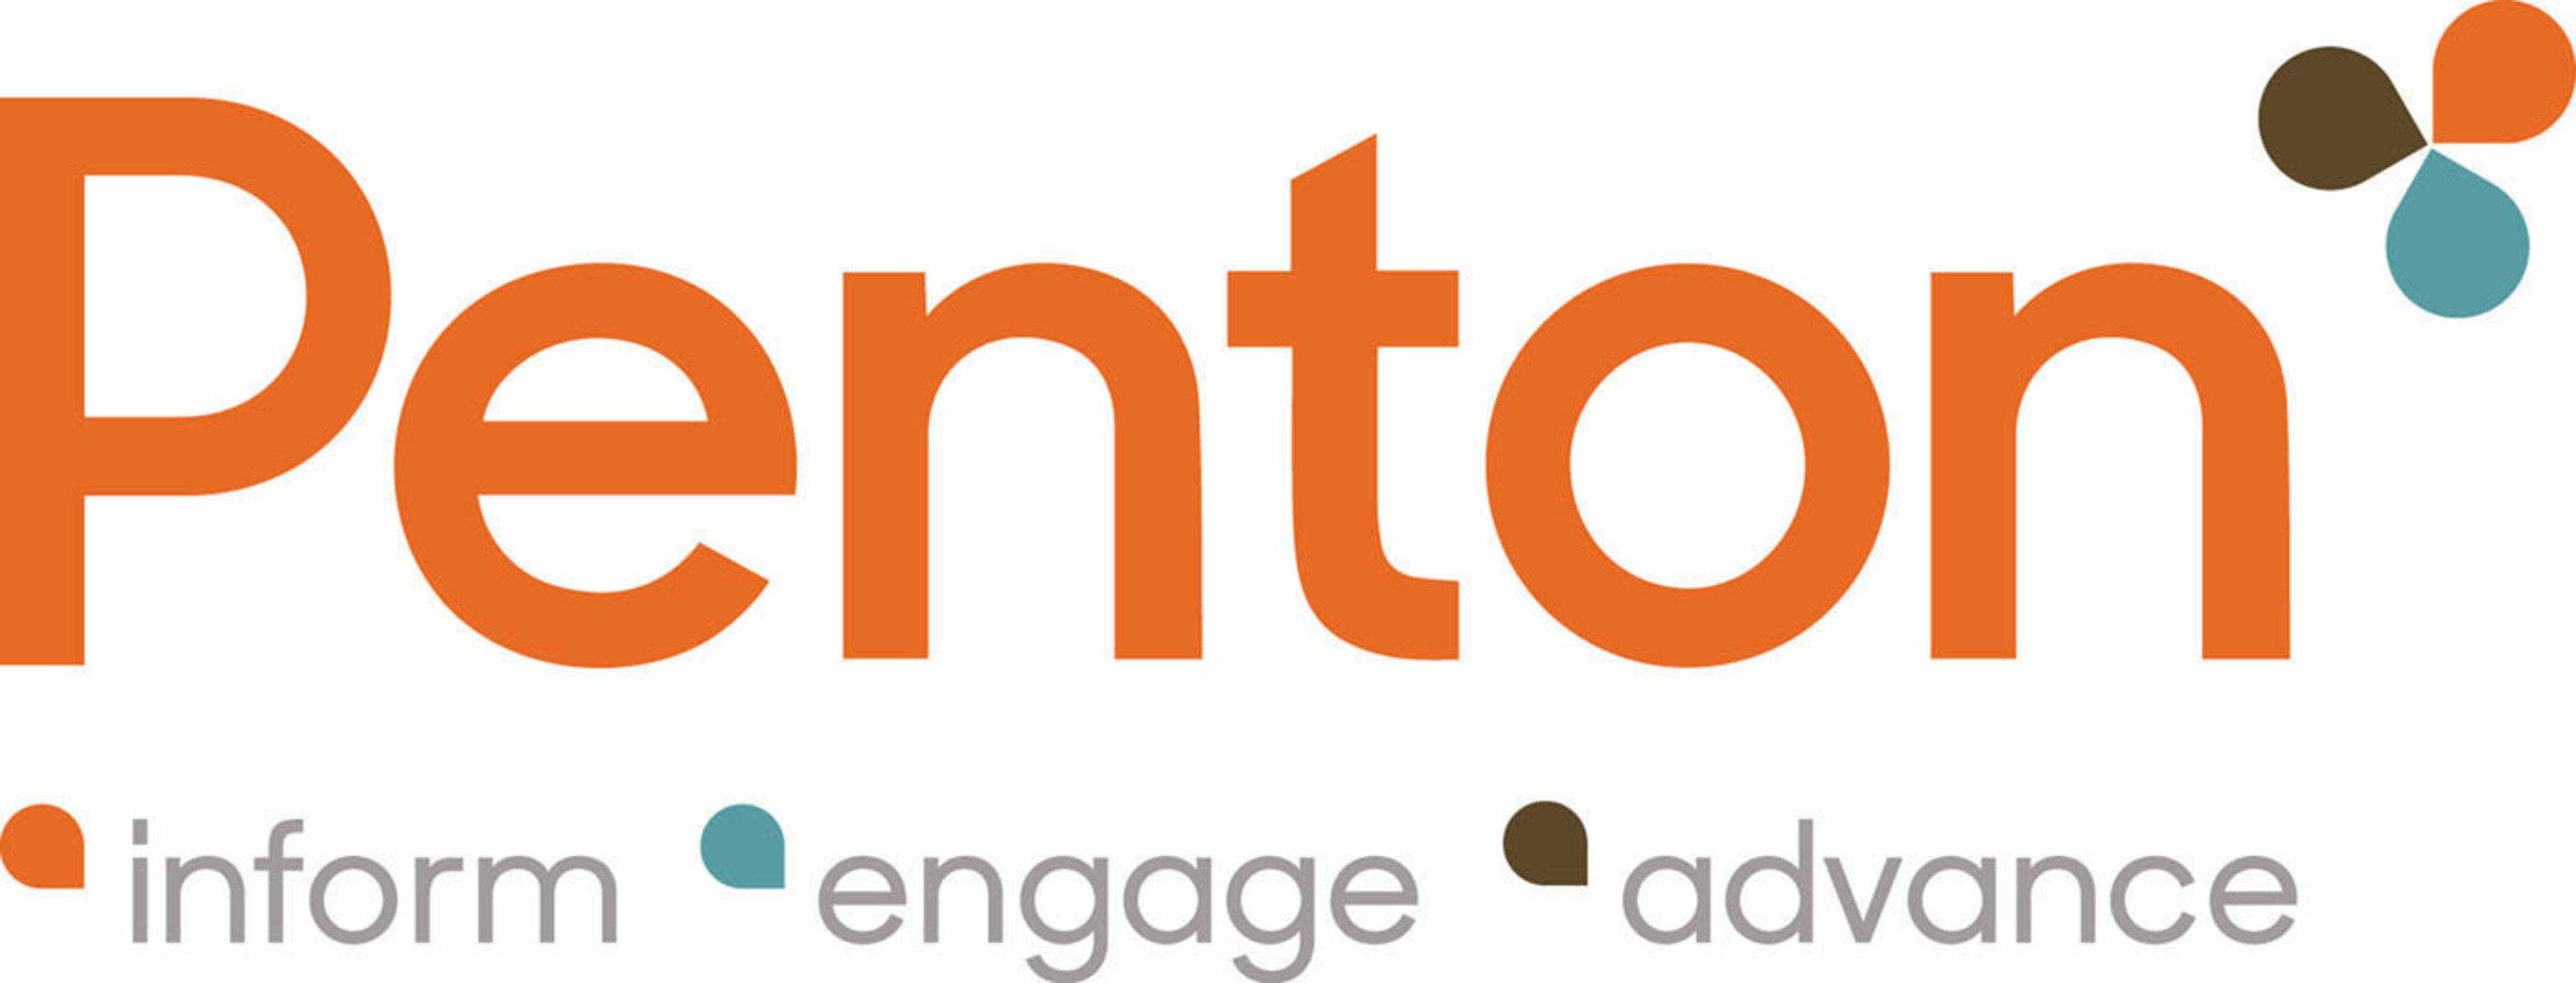 Penton's Talkin' Cloud Unveils 5th Annual Talkin' Cloud 100 List: Top Cloud Computing Companies with Ties to IT Channel Demonstrate Versatility and Agility in Fast Cha